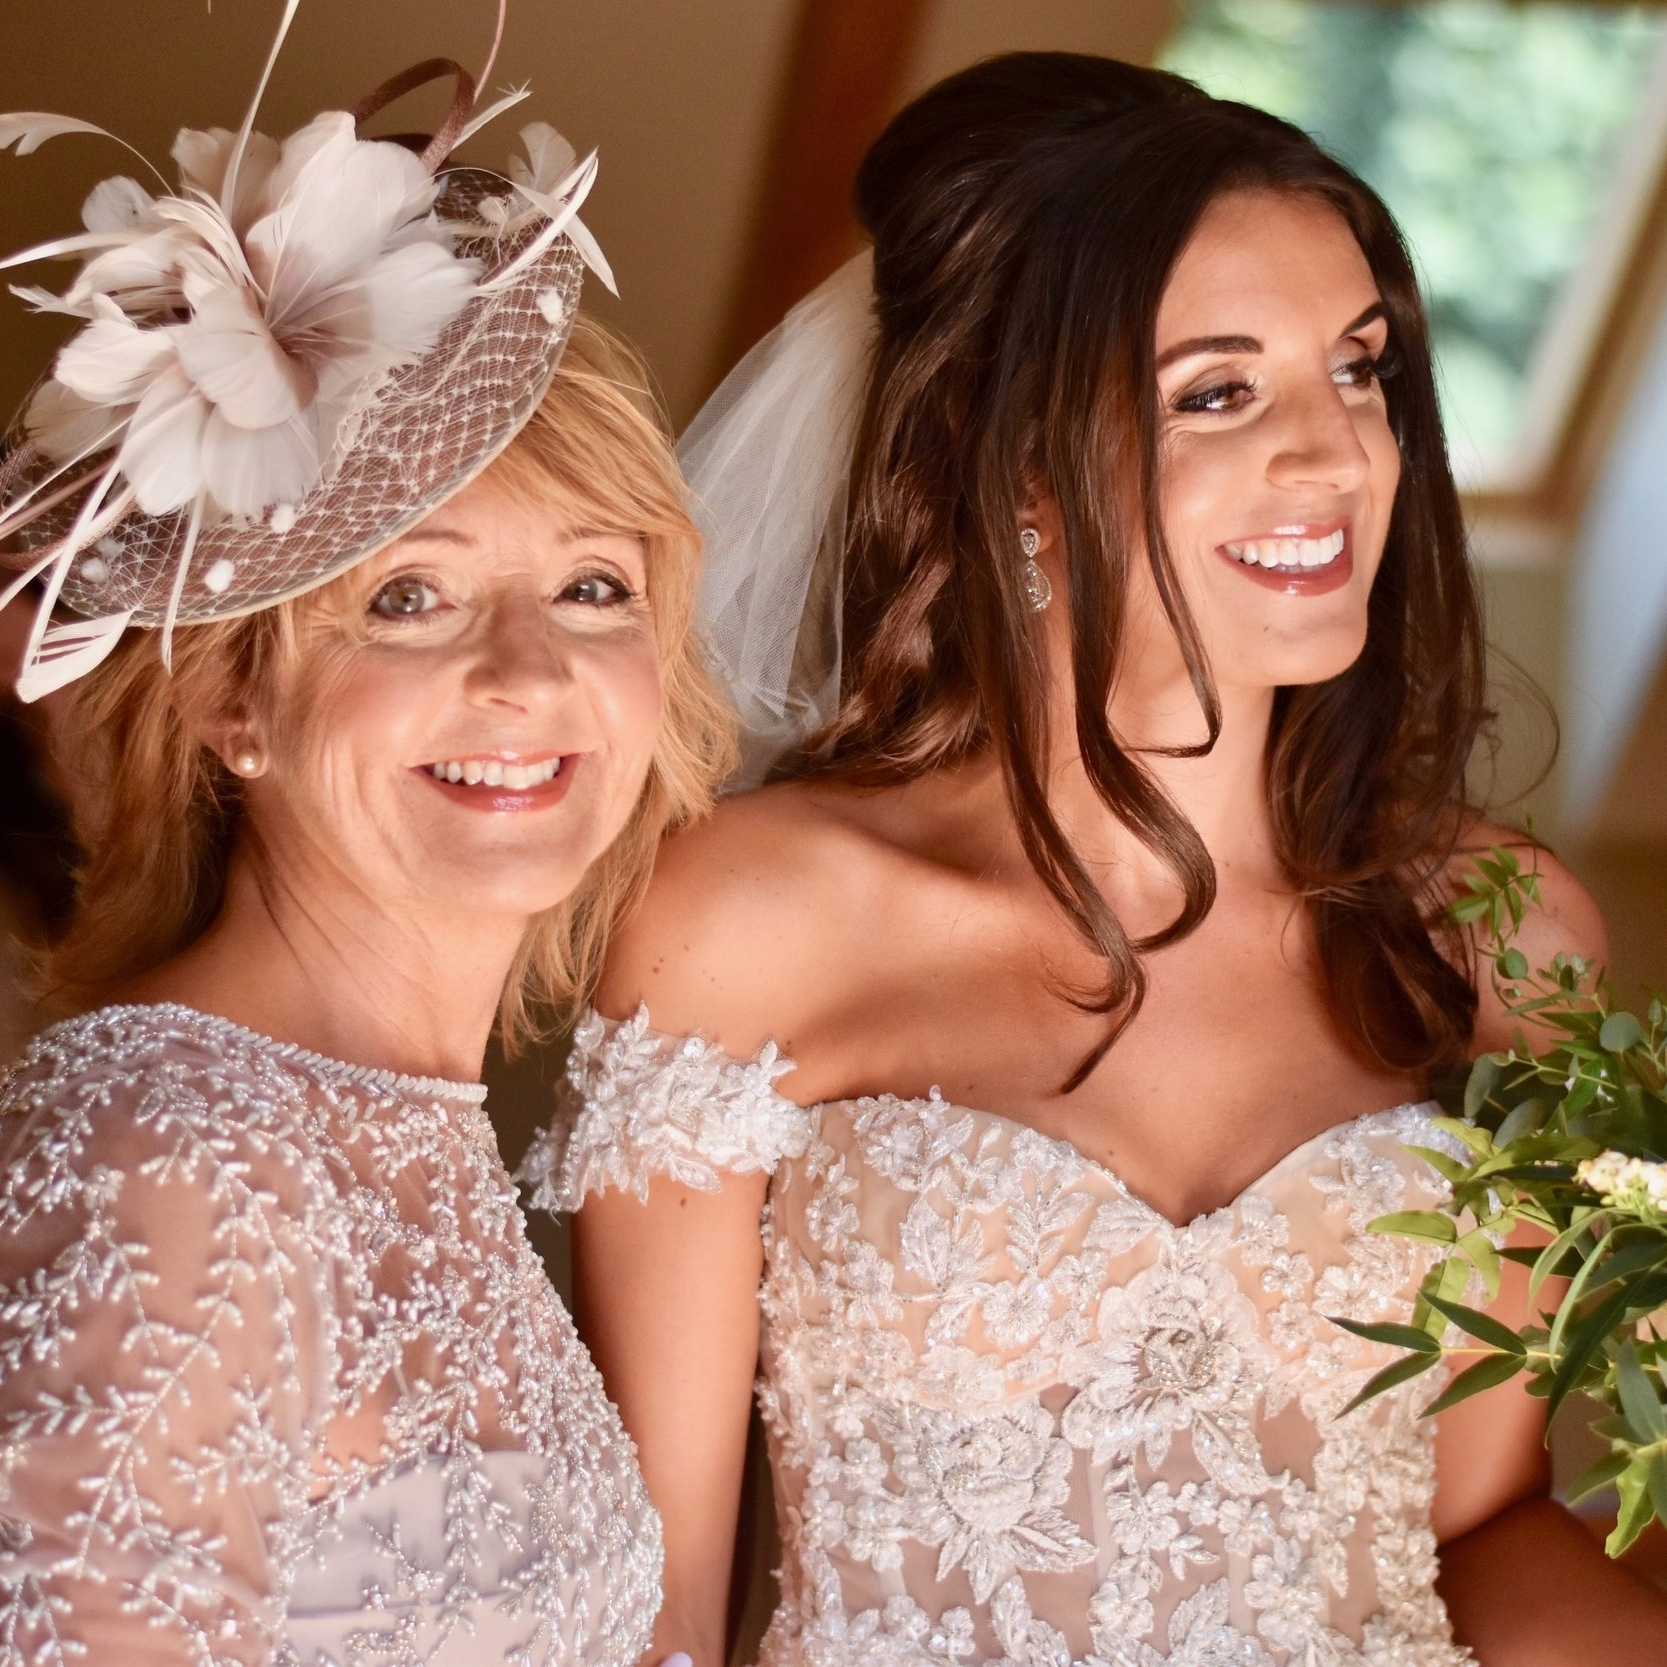 Fresh and clear makeup for the Mother of the Bride and clear precise Bridal Makeup